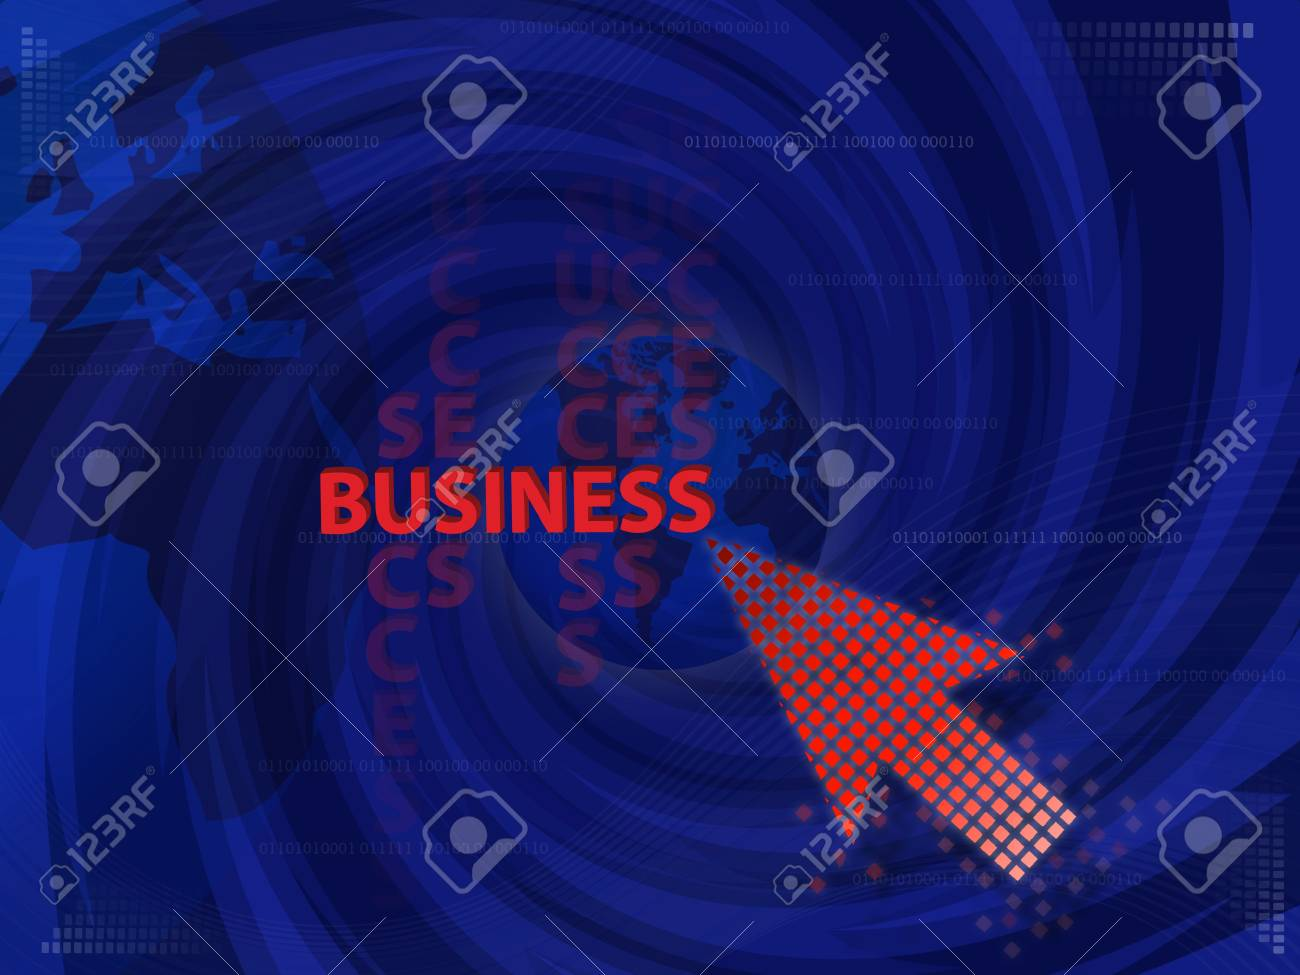 Art work of business Idea with touching virtual screen by red arrow graphic with modern spiral blue background. Stock Photo - 14042915